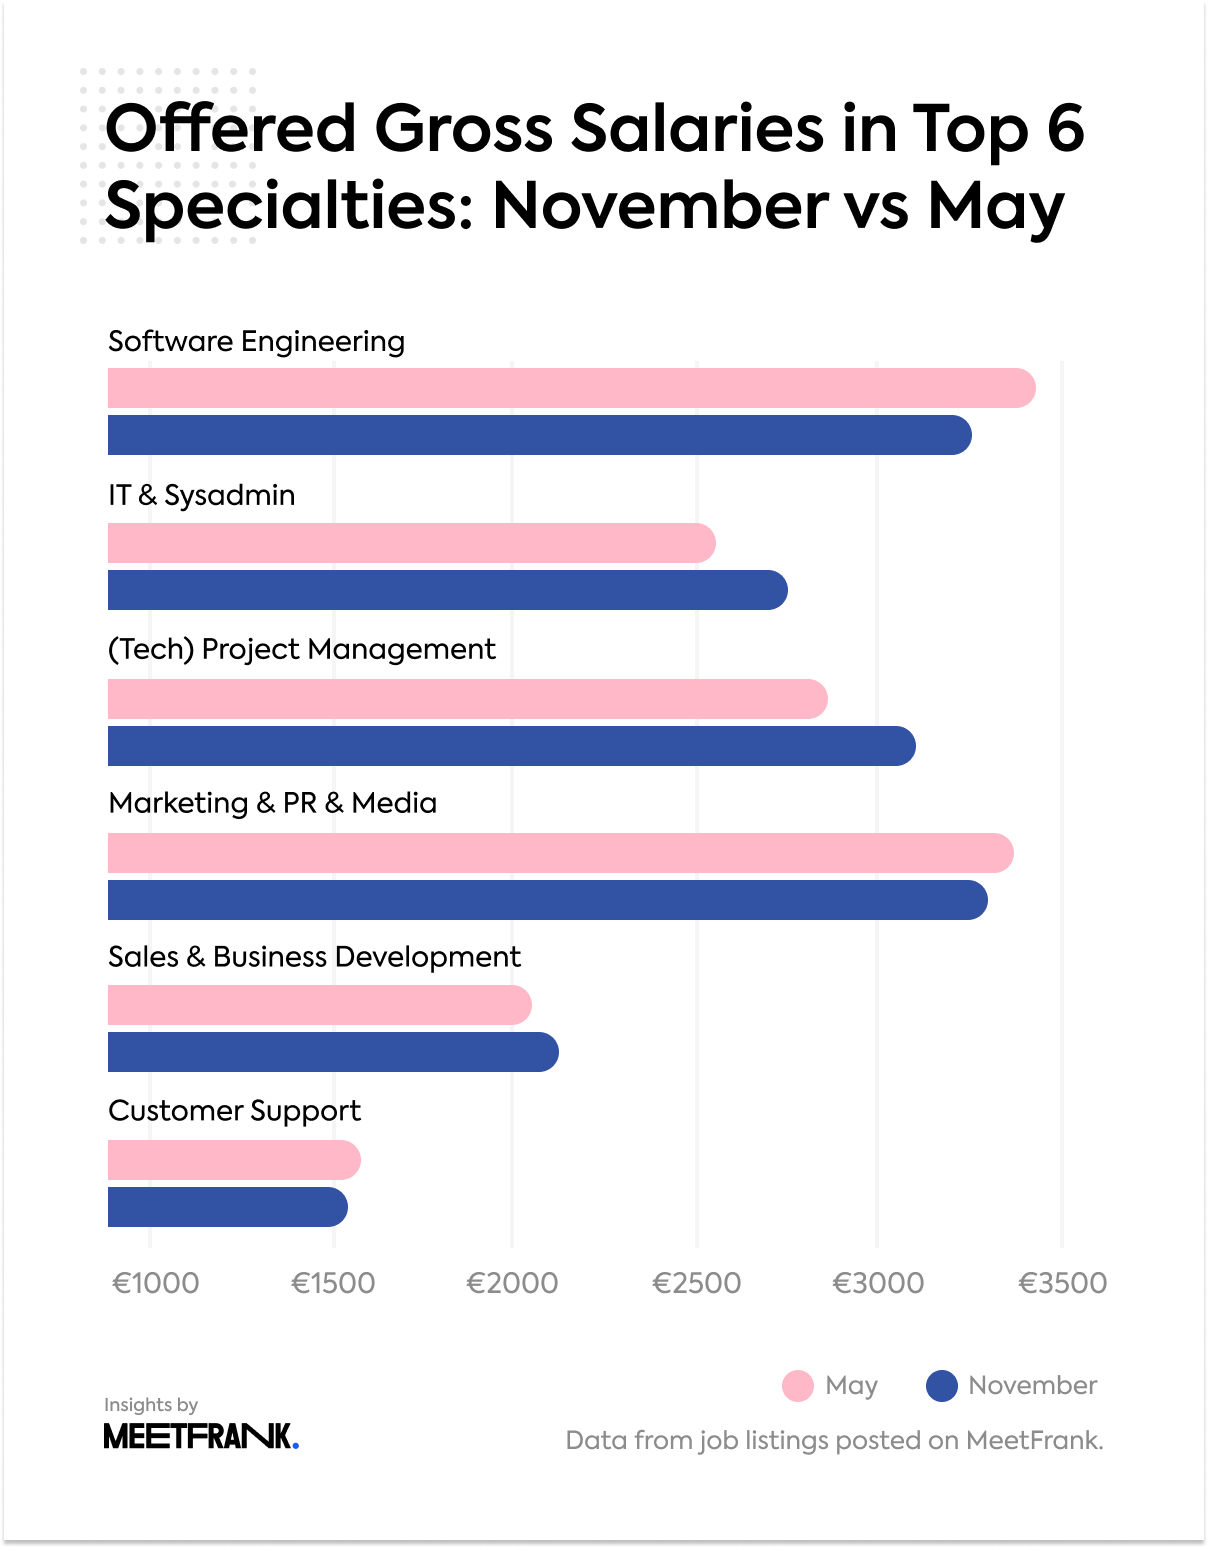 Offered gross salaries in EE: November vs May 2020